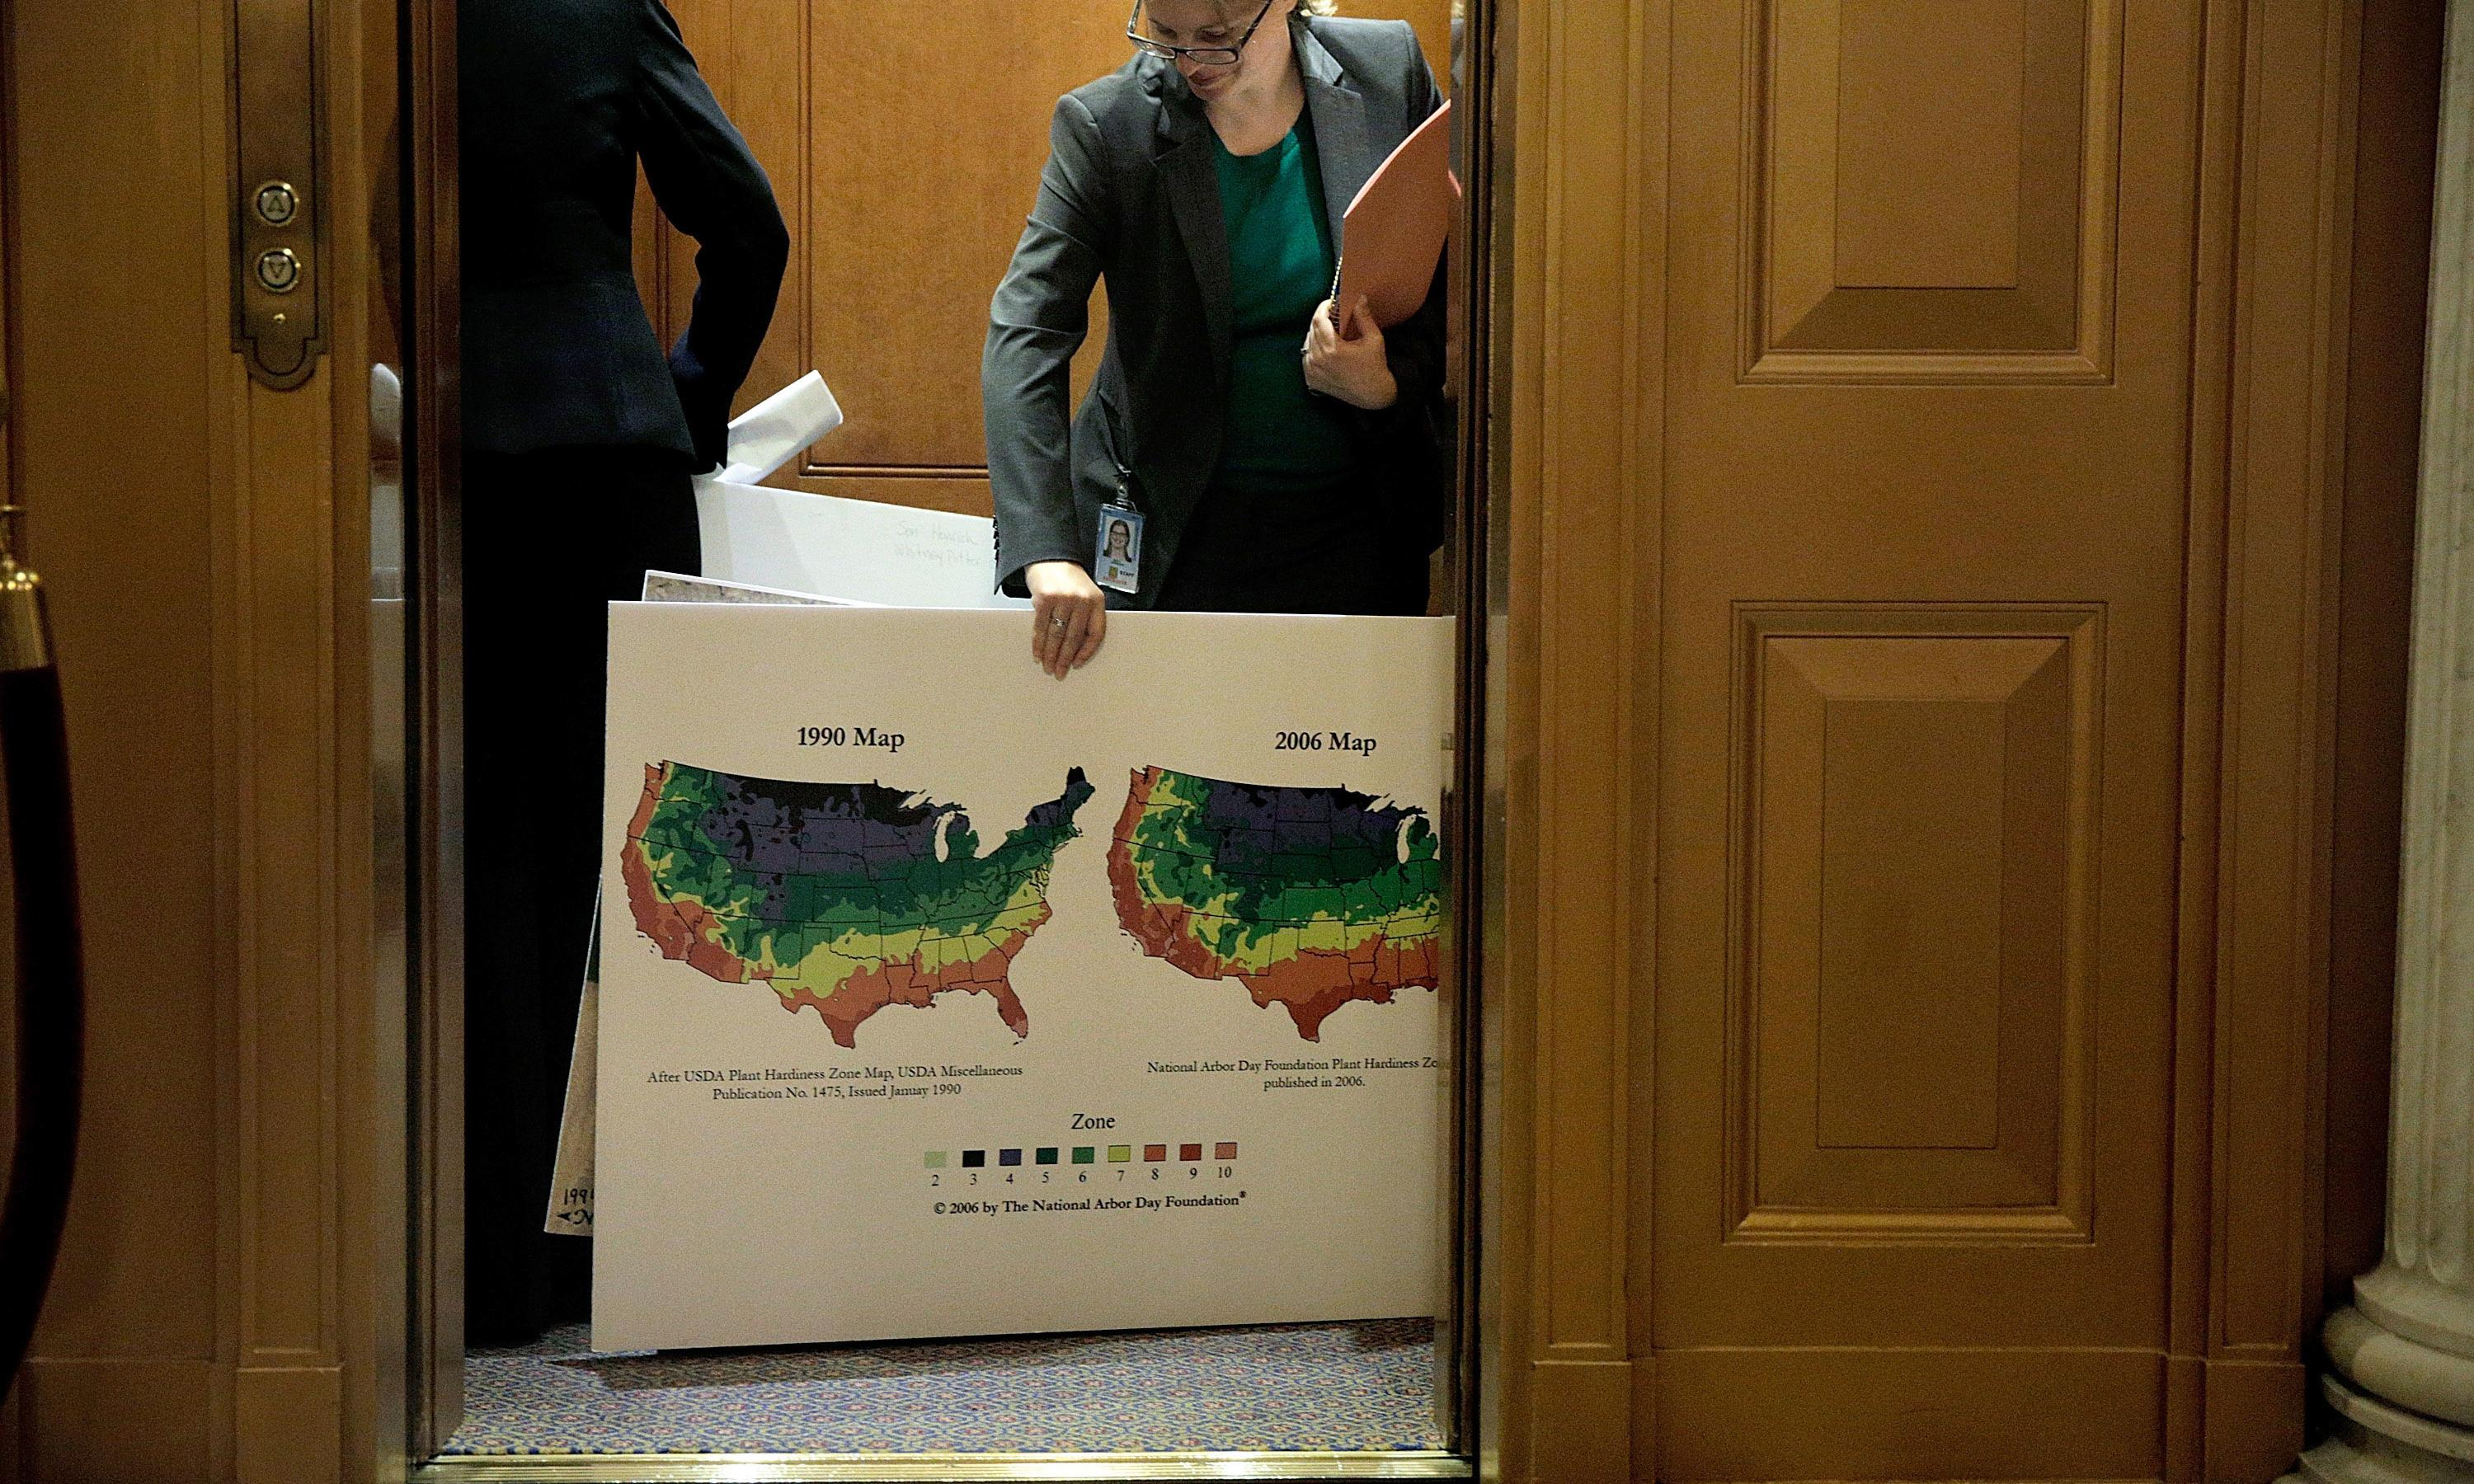 A woman entering a hearing holding a sign that shows two maps that compare plant hardiness zones.